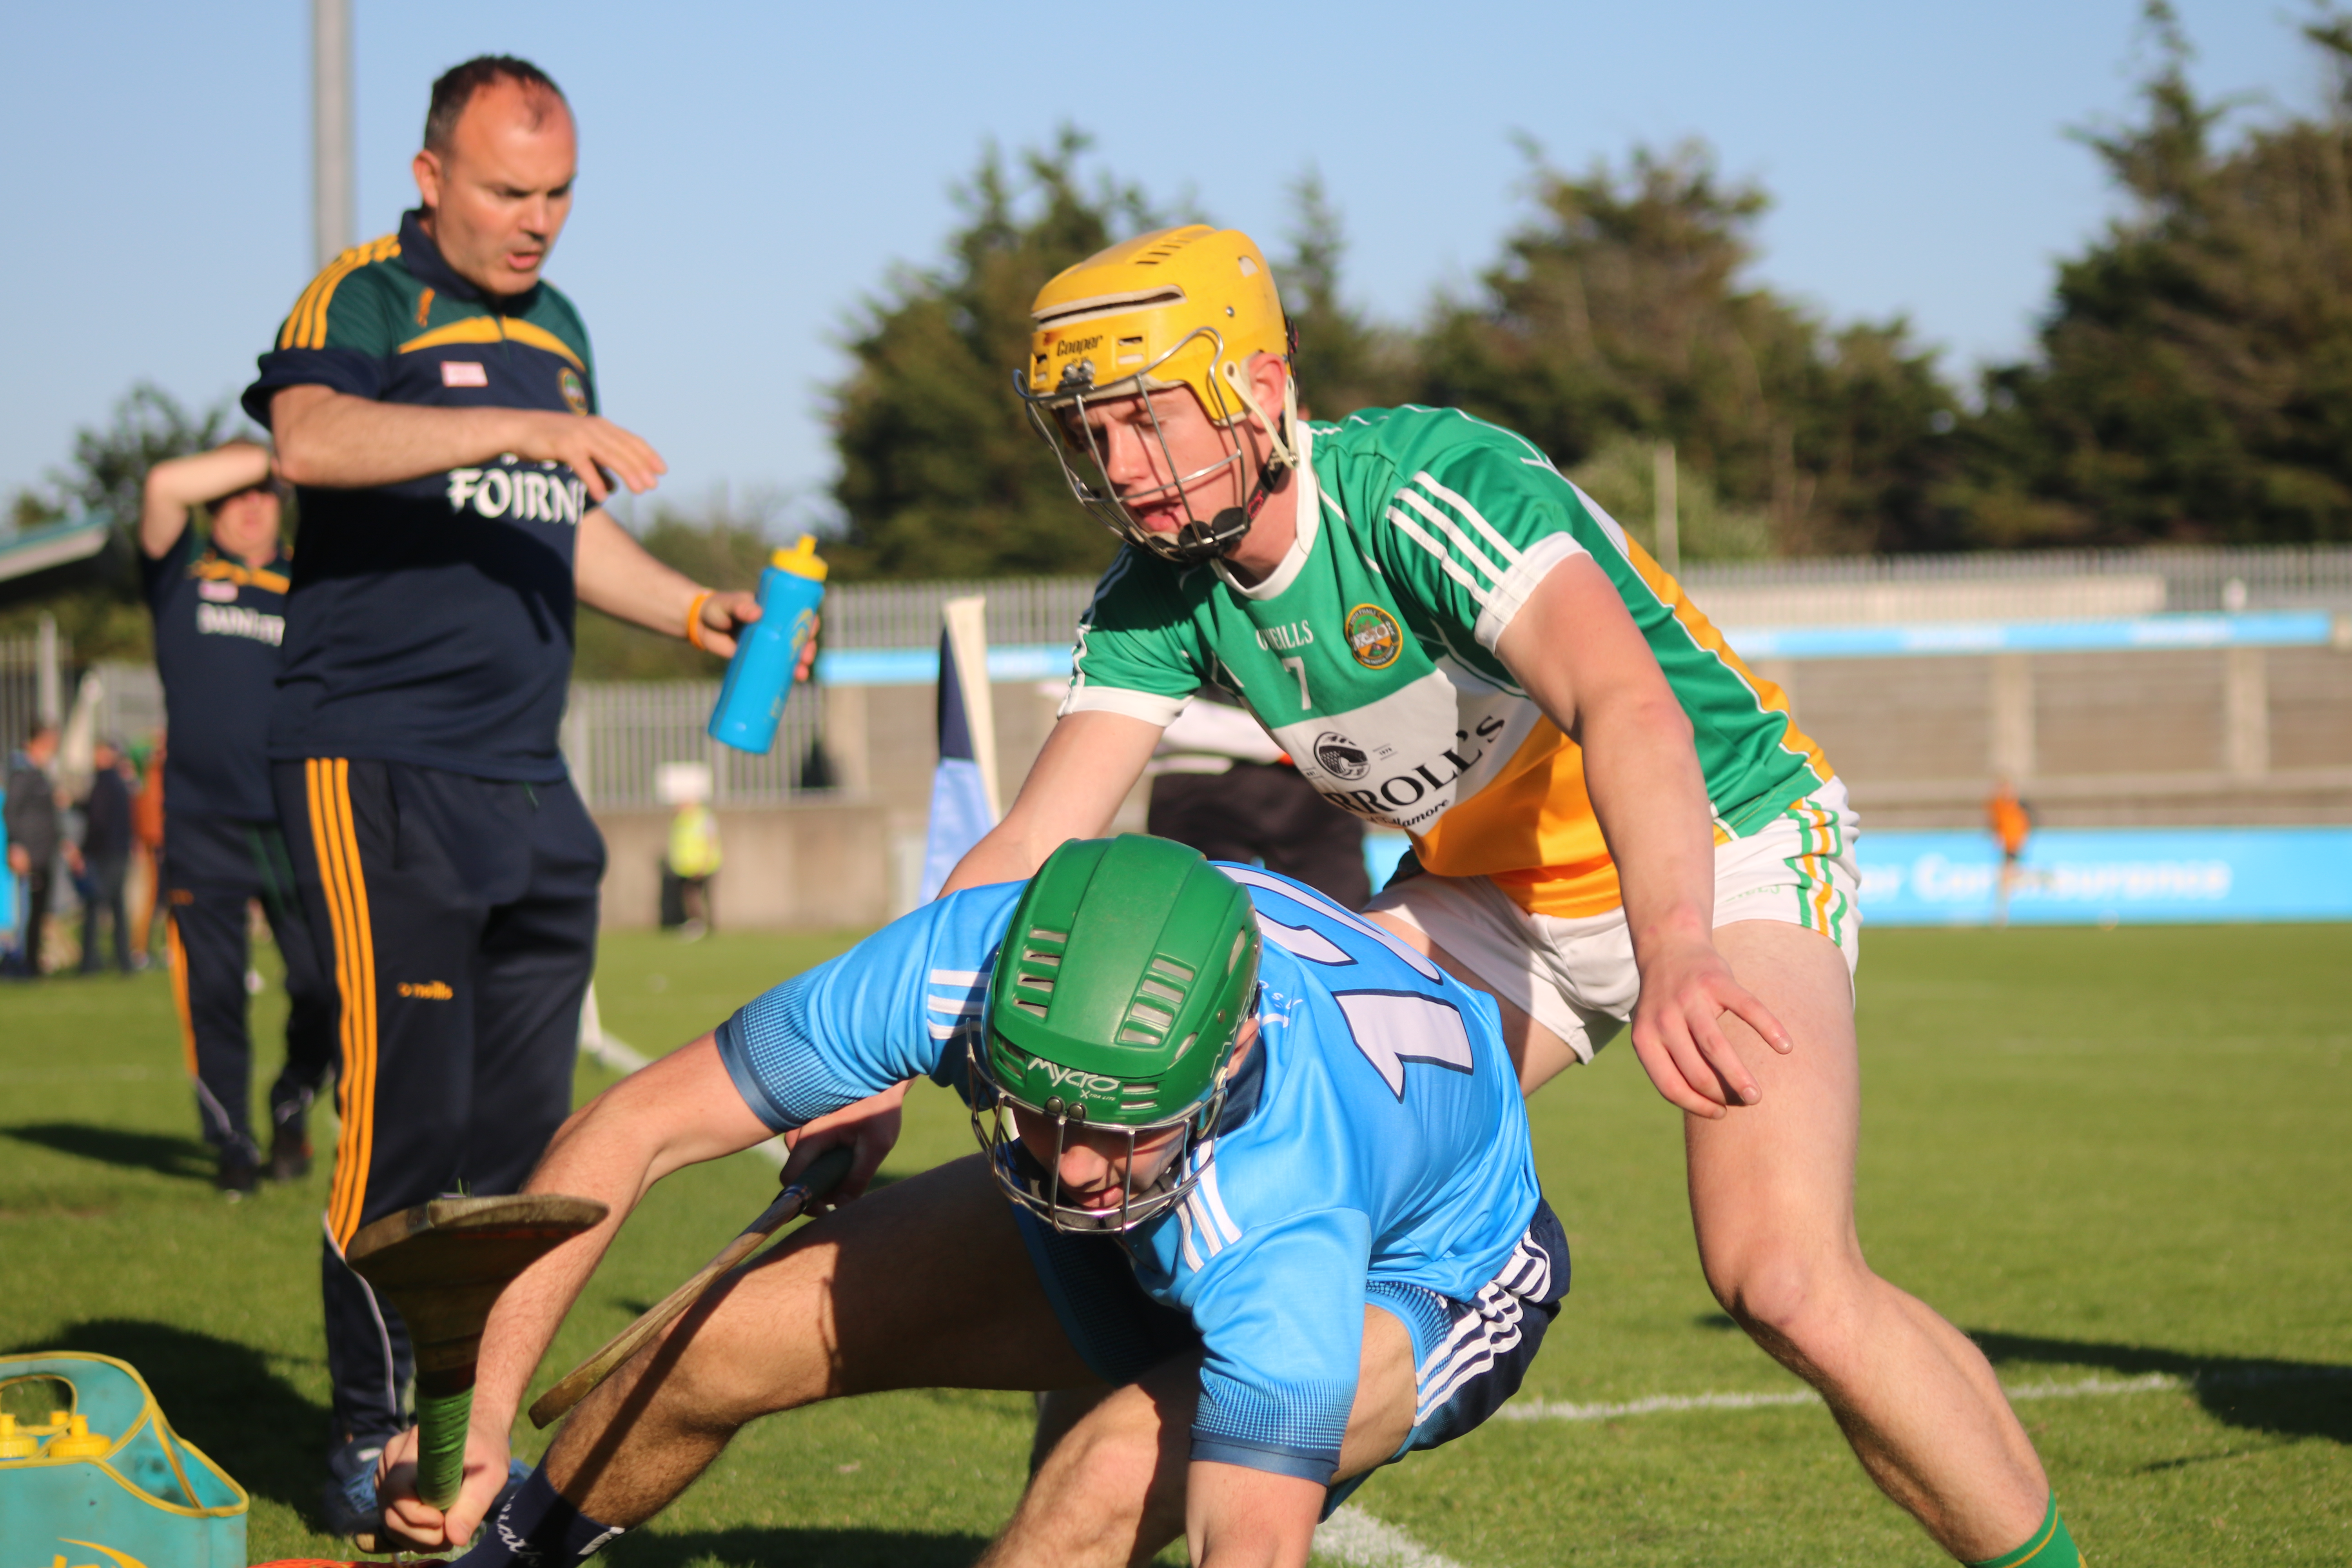 Offaly edge out Dublin in Thriller